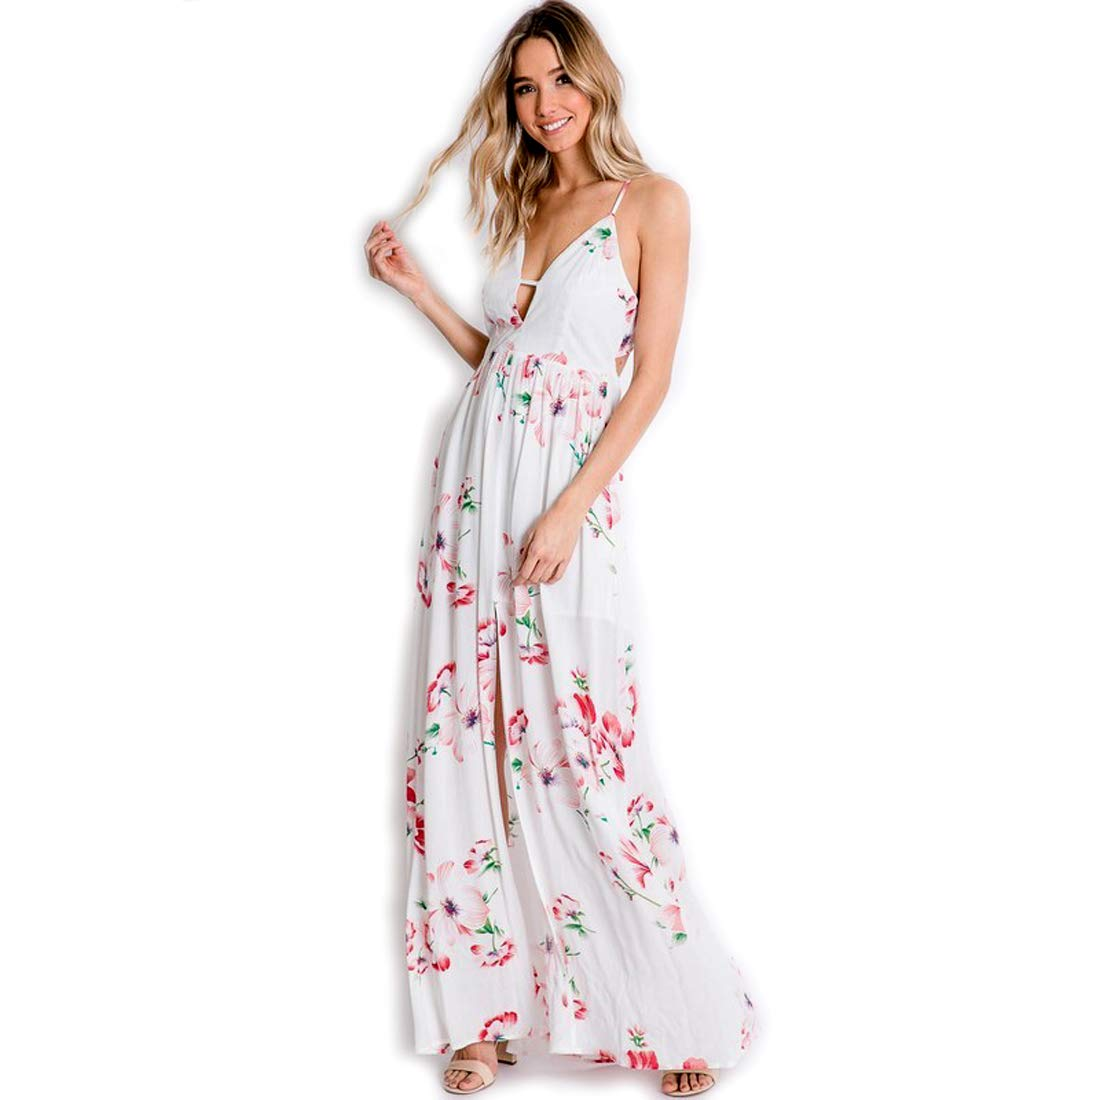 42a8ad9c0ca9c Davi & Dani Beautiul Floral Summer Maxi Dress in White with Pastel ...